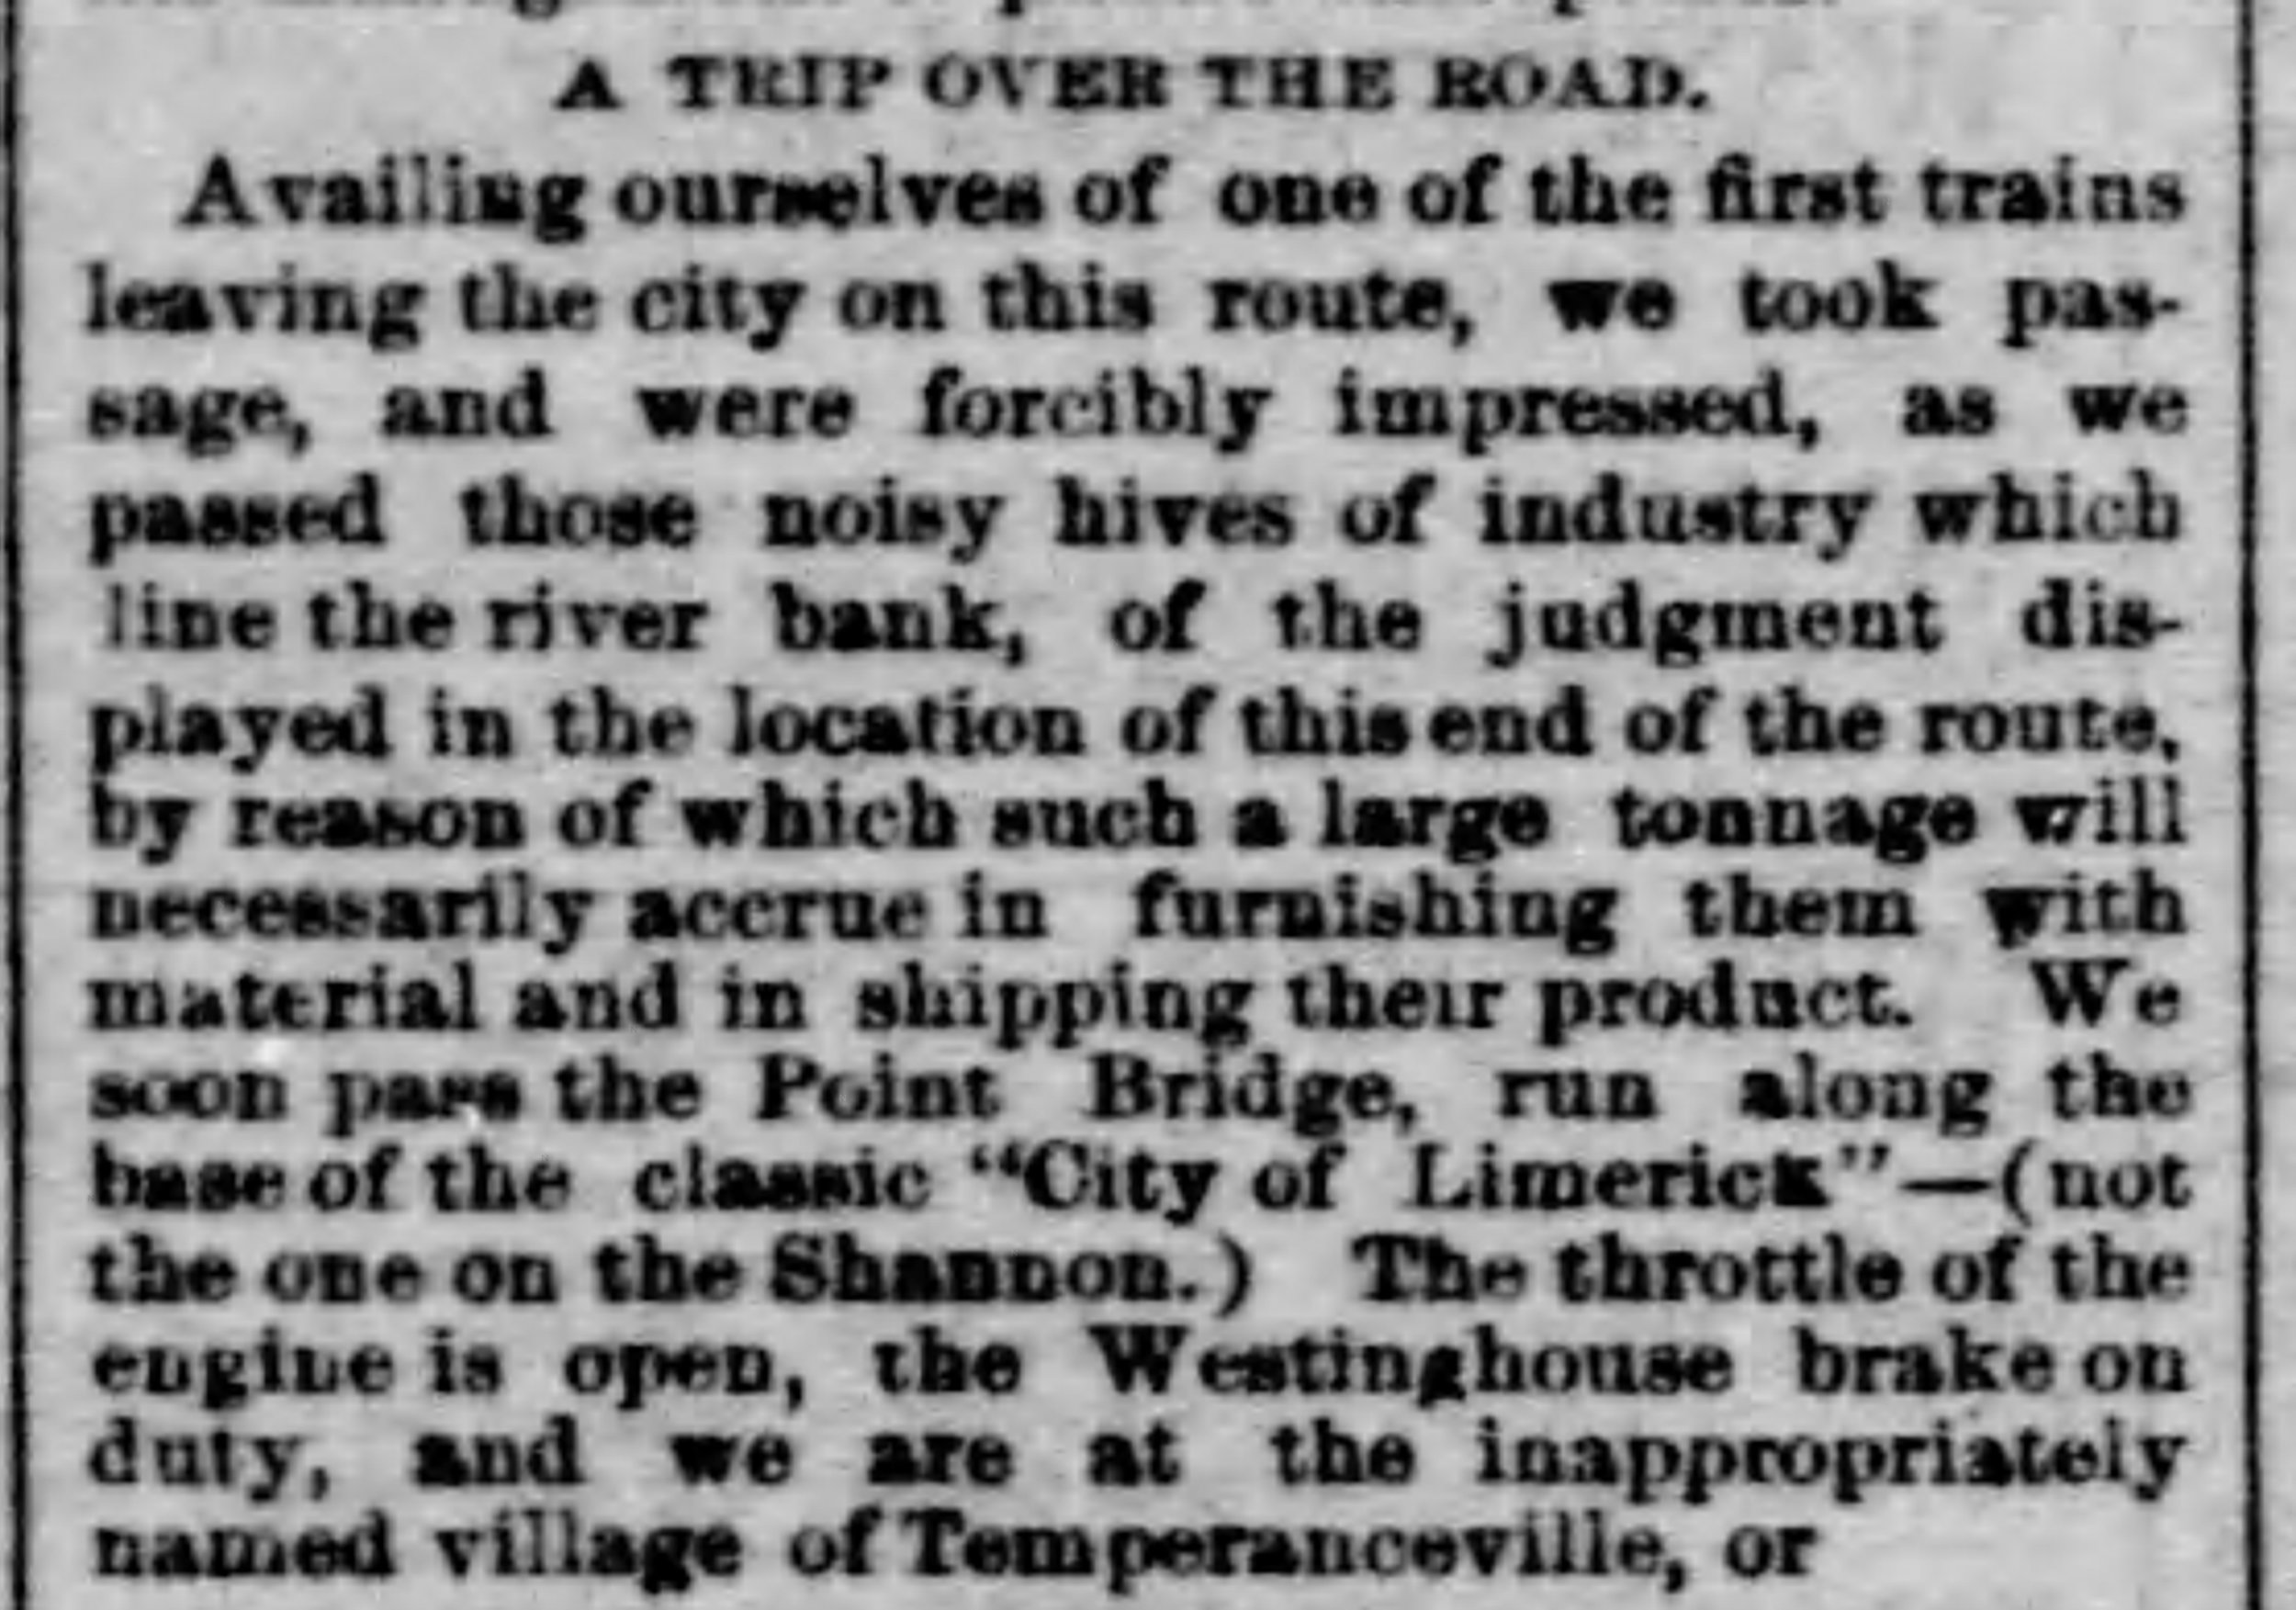 Our New Outlet - Pittsburgh_Post_Gazette_Wed__Feb_26__1879(c).jpg